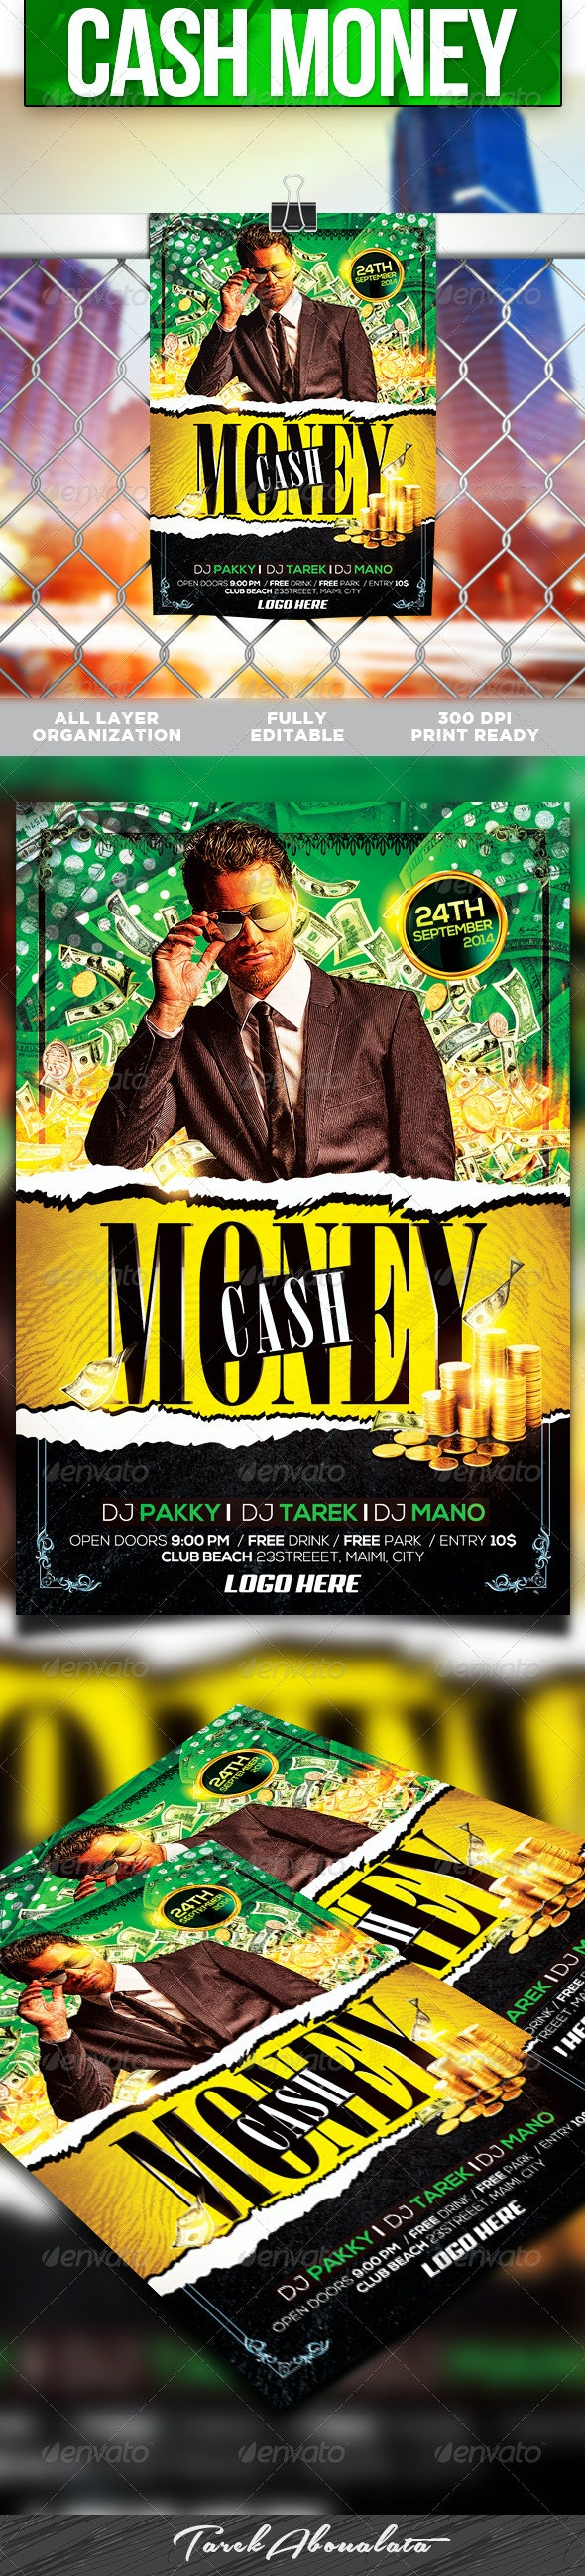 Cash Money Flyer Template v.2 - Clubs & Parties Events